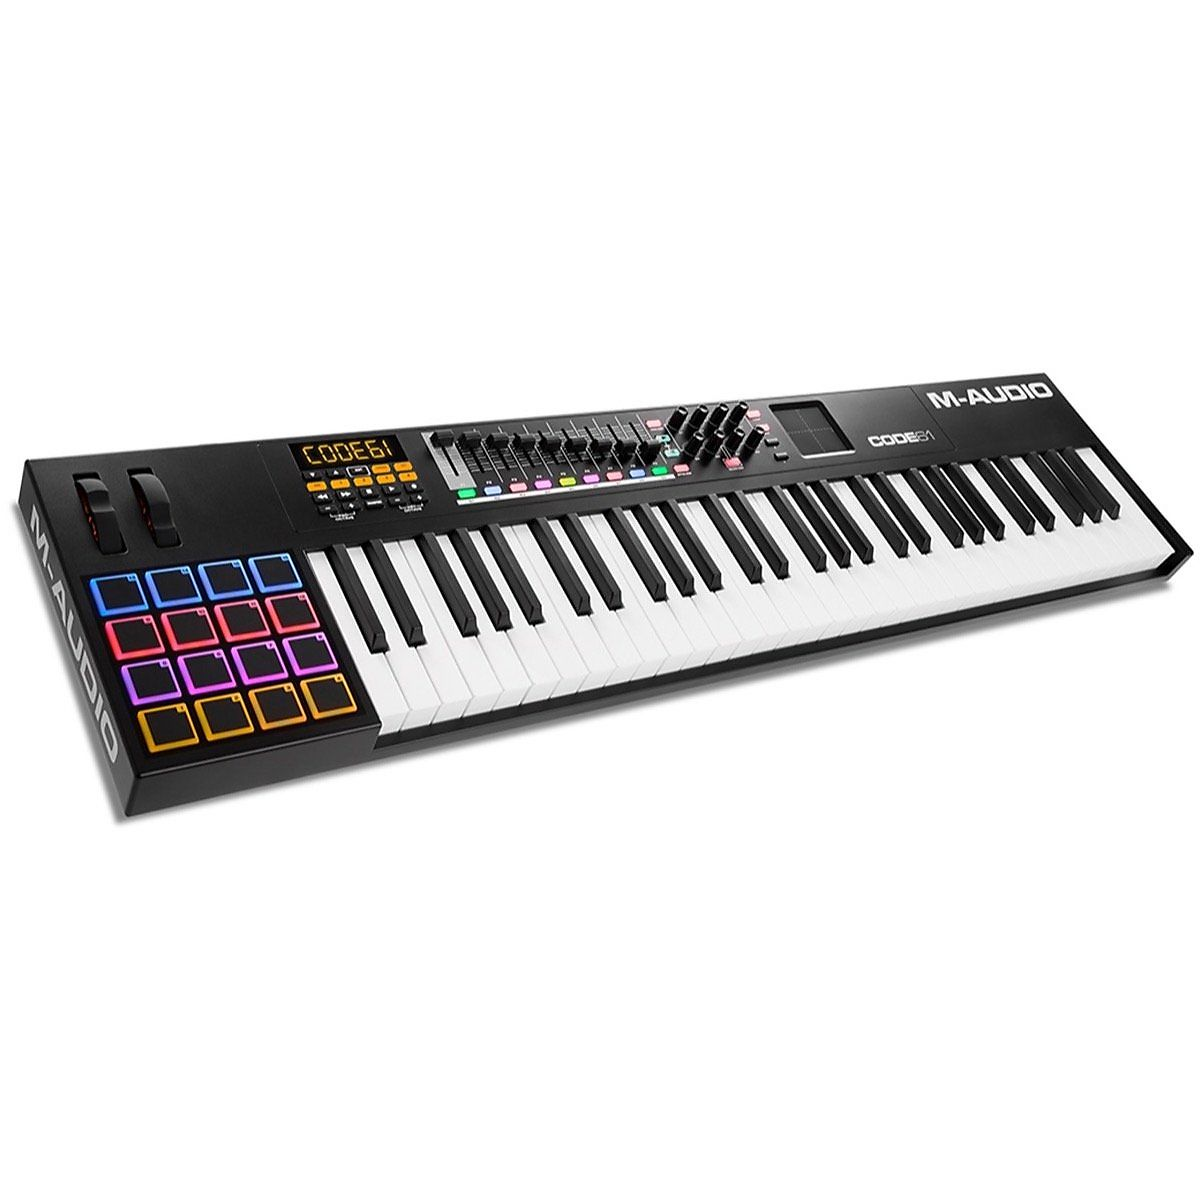 m audio code 61 usb midi keyboard controller reverb. Black Bedroom Furniture Sets. Home Design Ideas